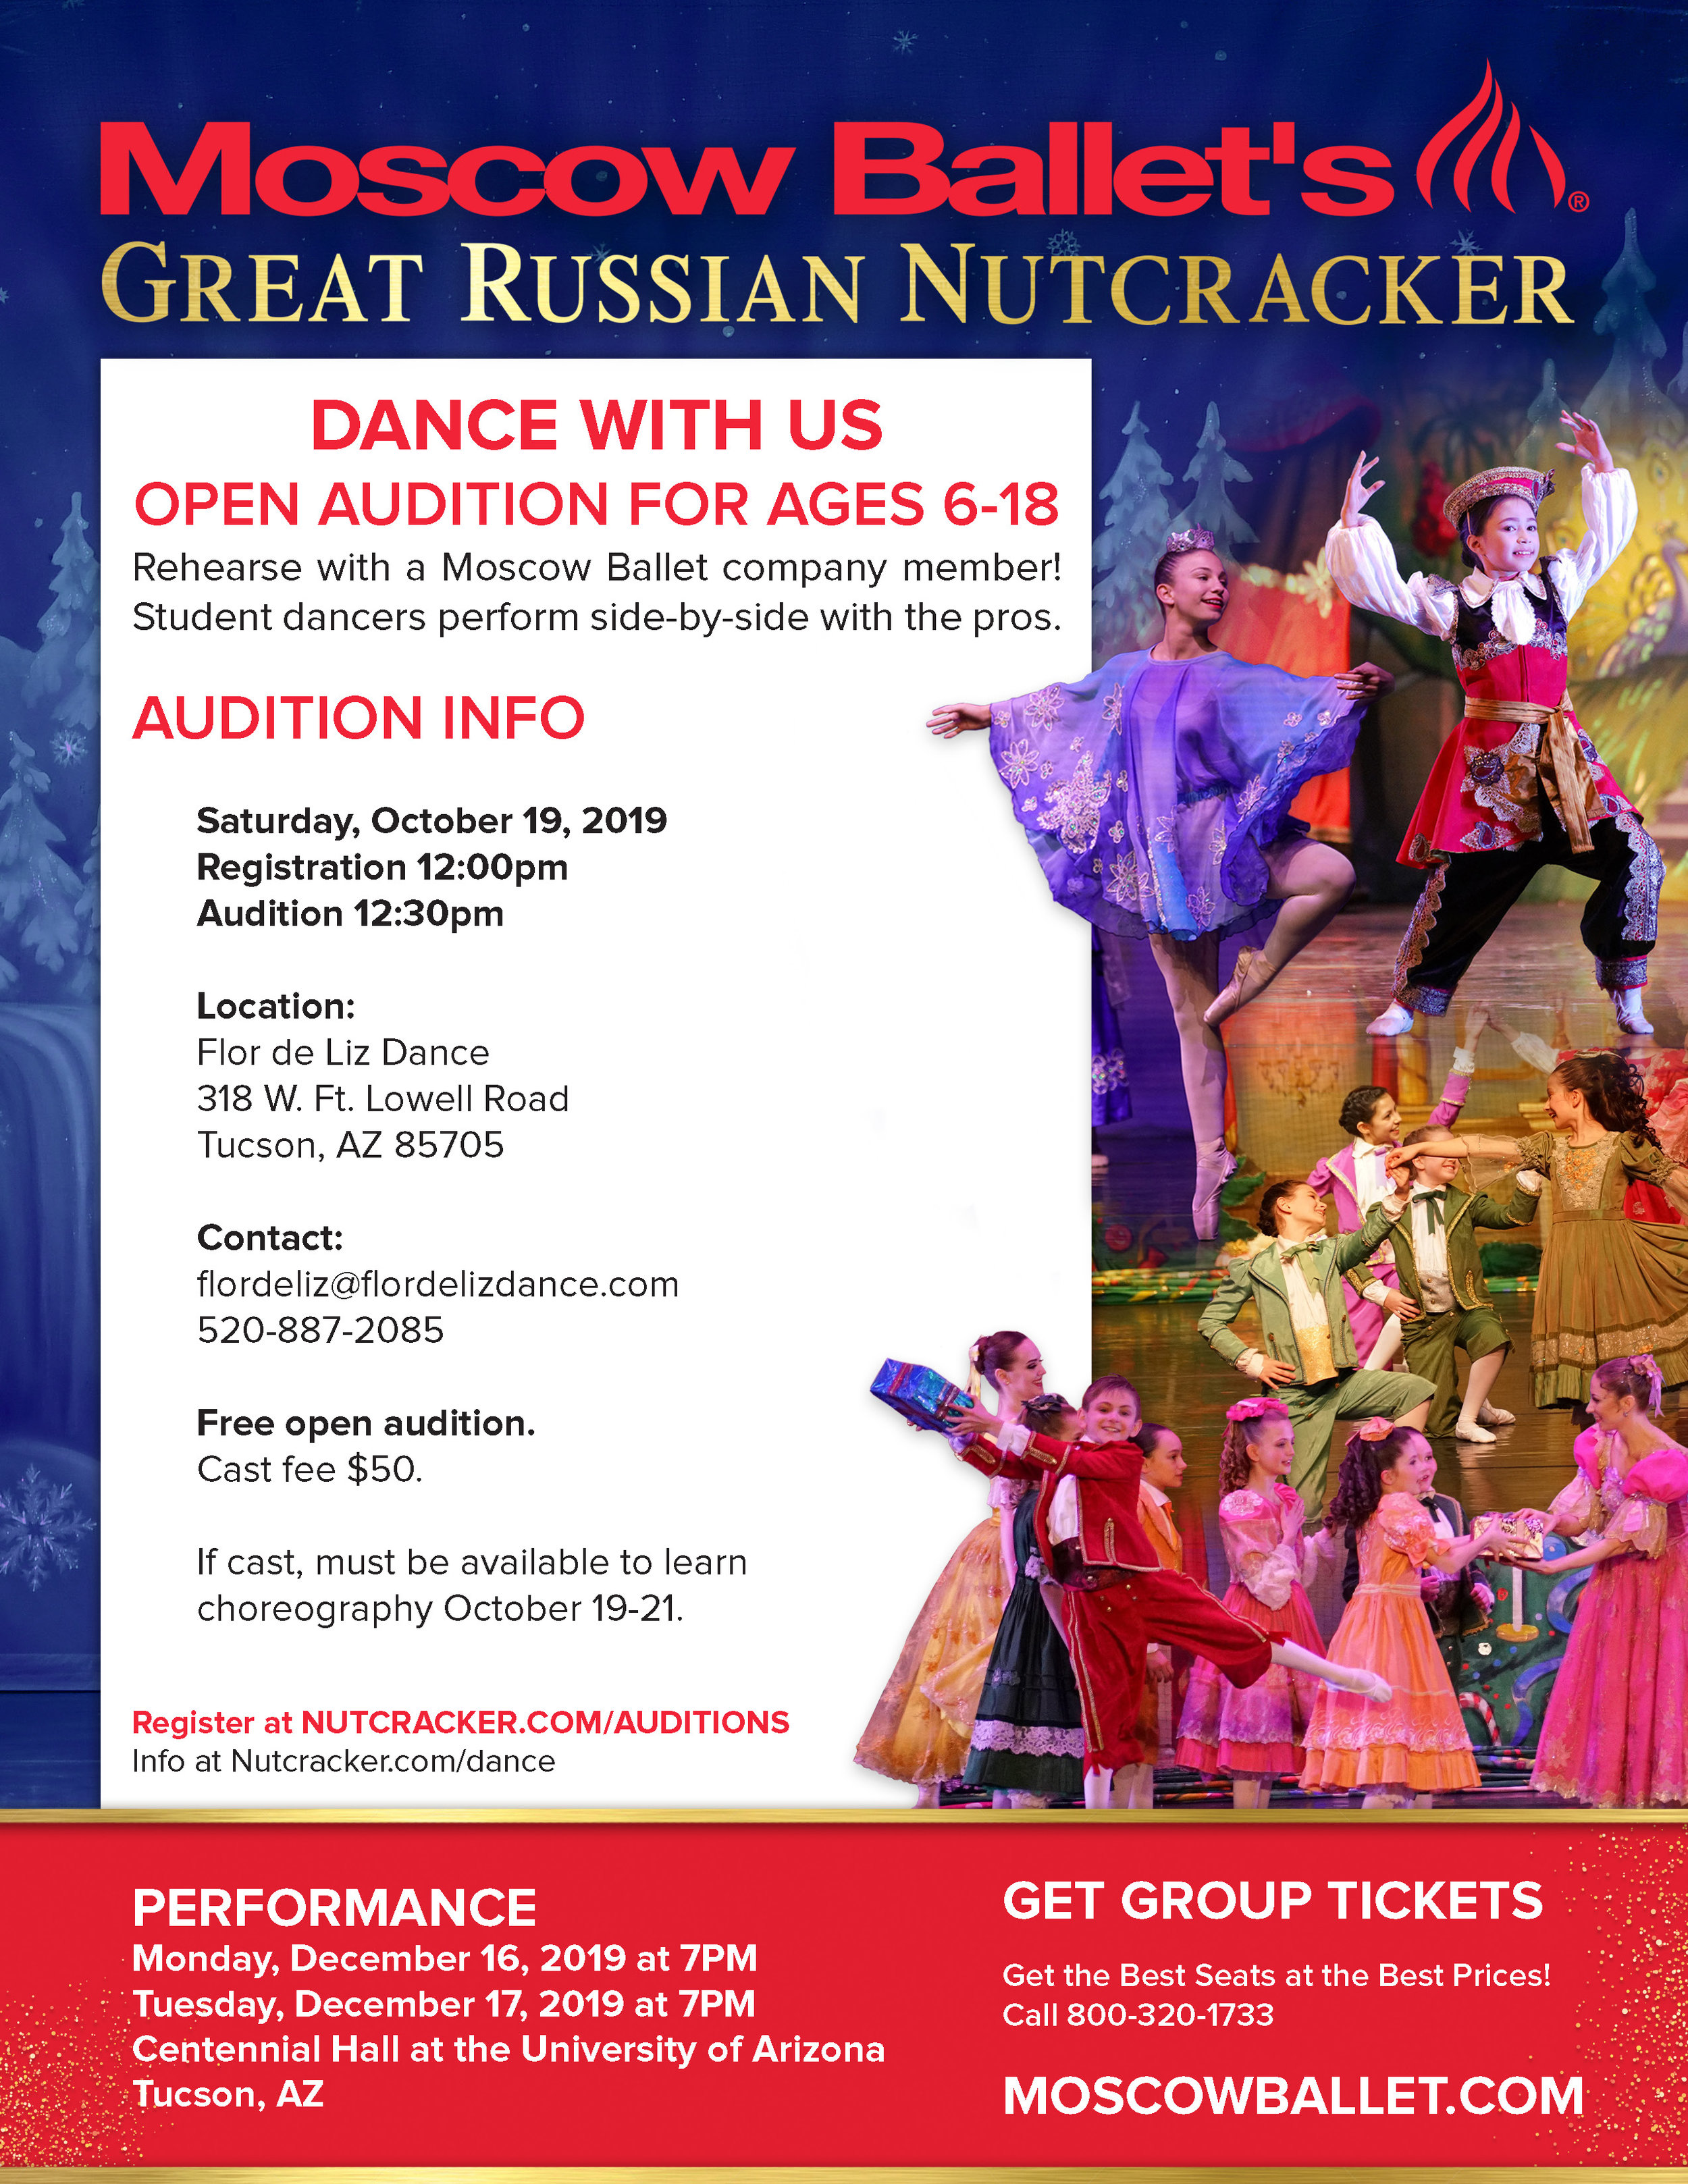 NUTCRACKER AUDITION @ Flor de Liz Dance (FDLD)  for AGES: 6 - 18, must have at least 1 year of ballet training and must be currently enrolled in a ballet class.   S AT . O C T . 19 @ 1 2 : 0 0   Registration:  • Assume 1/2 hour for registration process: 12:00pm - 12:30pm  • Each student will sign in their name and contact information and will be assigned a number to pin on their leotard.  • We will provide a Fact sheet with information for parents and dancers at the registration desk.  • All dancers must go to  www.nutcracker.com/auditions  and sign up before the audition date. Please turn in your signed waiver form at the registration desk.  Payment:  • $50 Cast fee payment is due by Sat. Oct. 26. EVERY DANCER WHO AUDITIONS WILL BE CAST!  Audition/Casting:  • Assume 2 hours for the audition: 12:30pm - 2:30pm  • Dancers must wear a black leotard, pink tights and pink ballet shoes.  • After the audition and casting is complete parents need to be present for the rehearsal announcement.  Rehearsals:  • Assume 3 hours rehearsal with audition director on Sat. Oct. 19: 2:30 - 5:30 and again on Sun.. Oct. 20: times TBA.. (11:00am - 2:00pm)  • Subsequent rehearsals will be with FDLD instructors @ FDLD on Saturdays between 3:00 and 5:00 PM.  • All dancers must be available and committed to the rehearsal schedule.